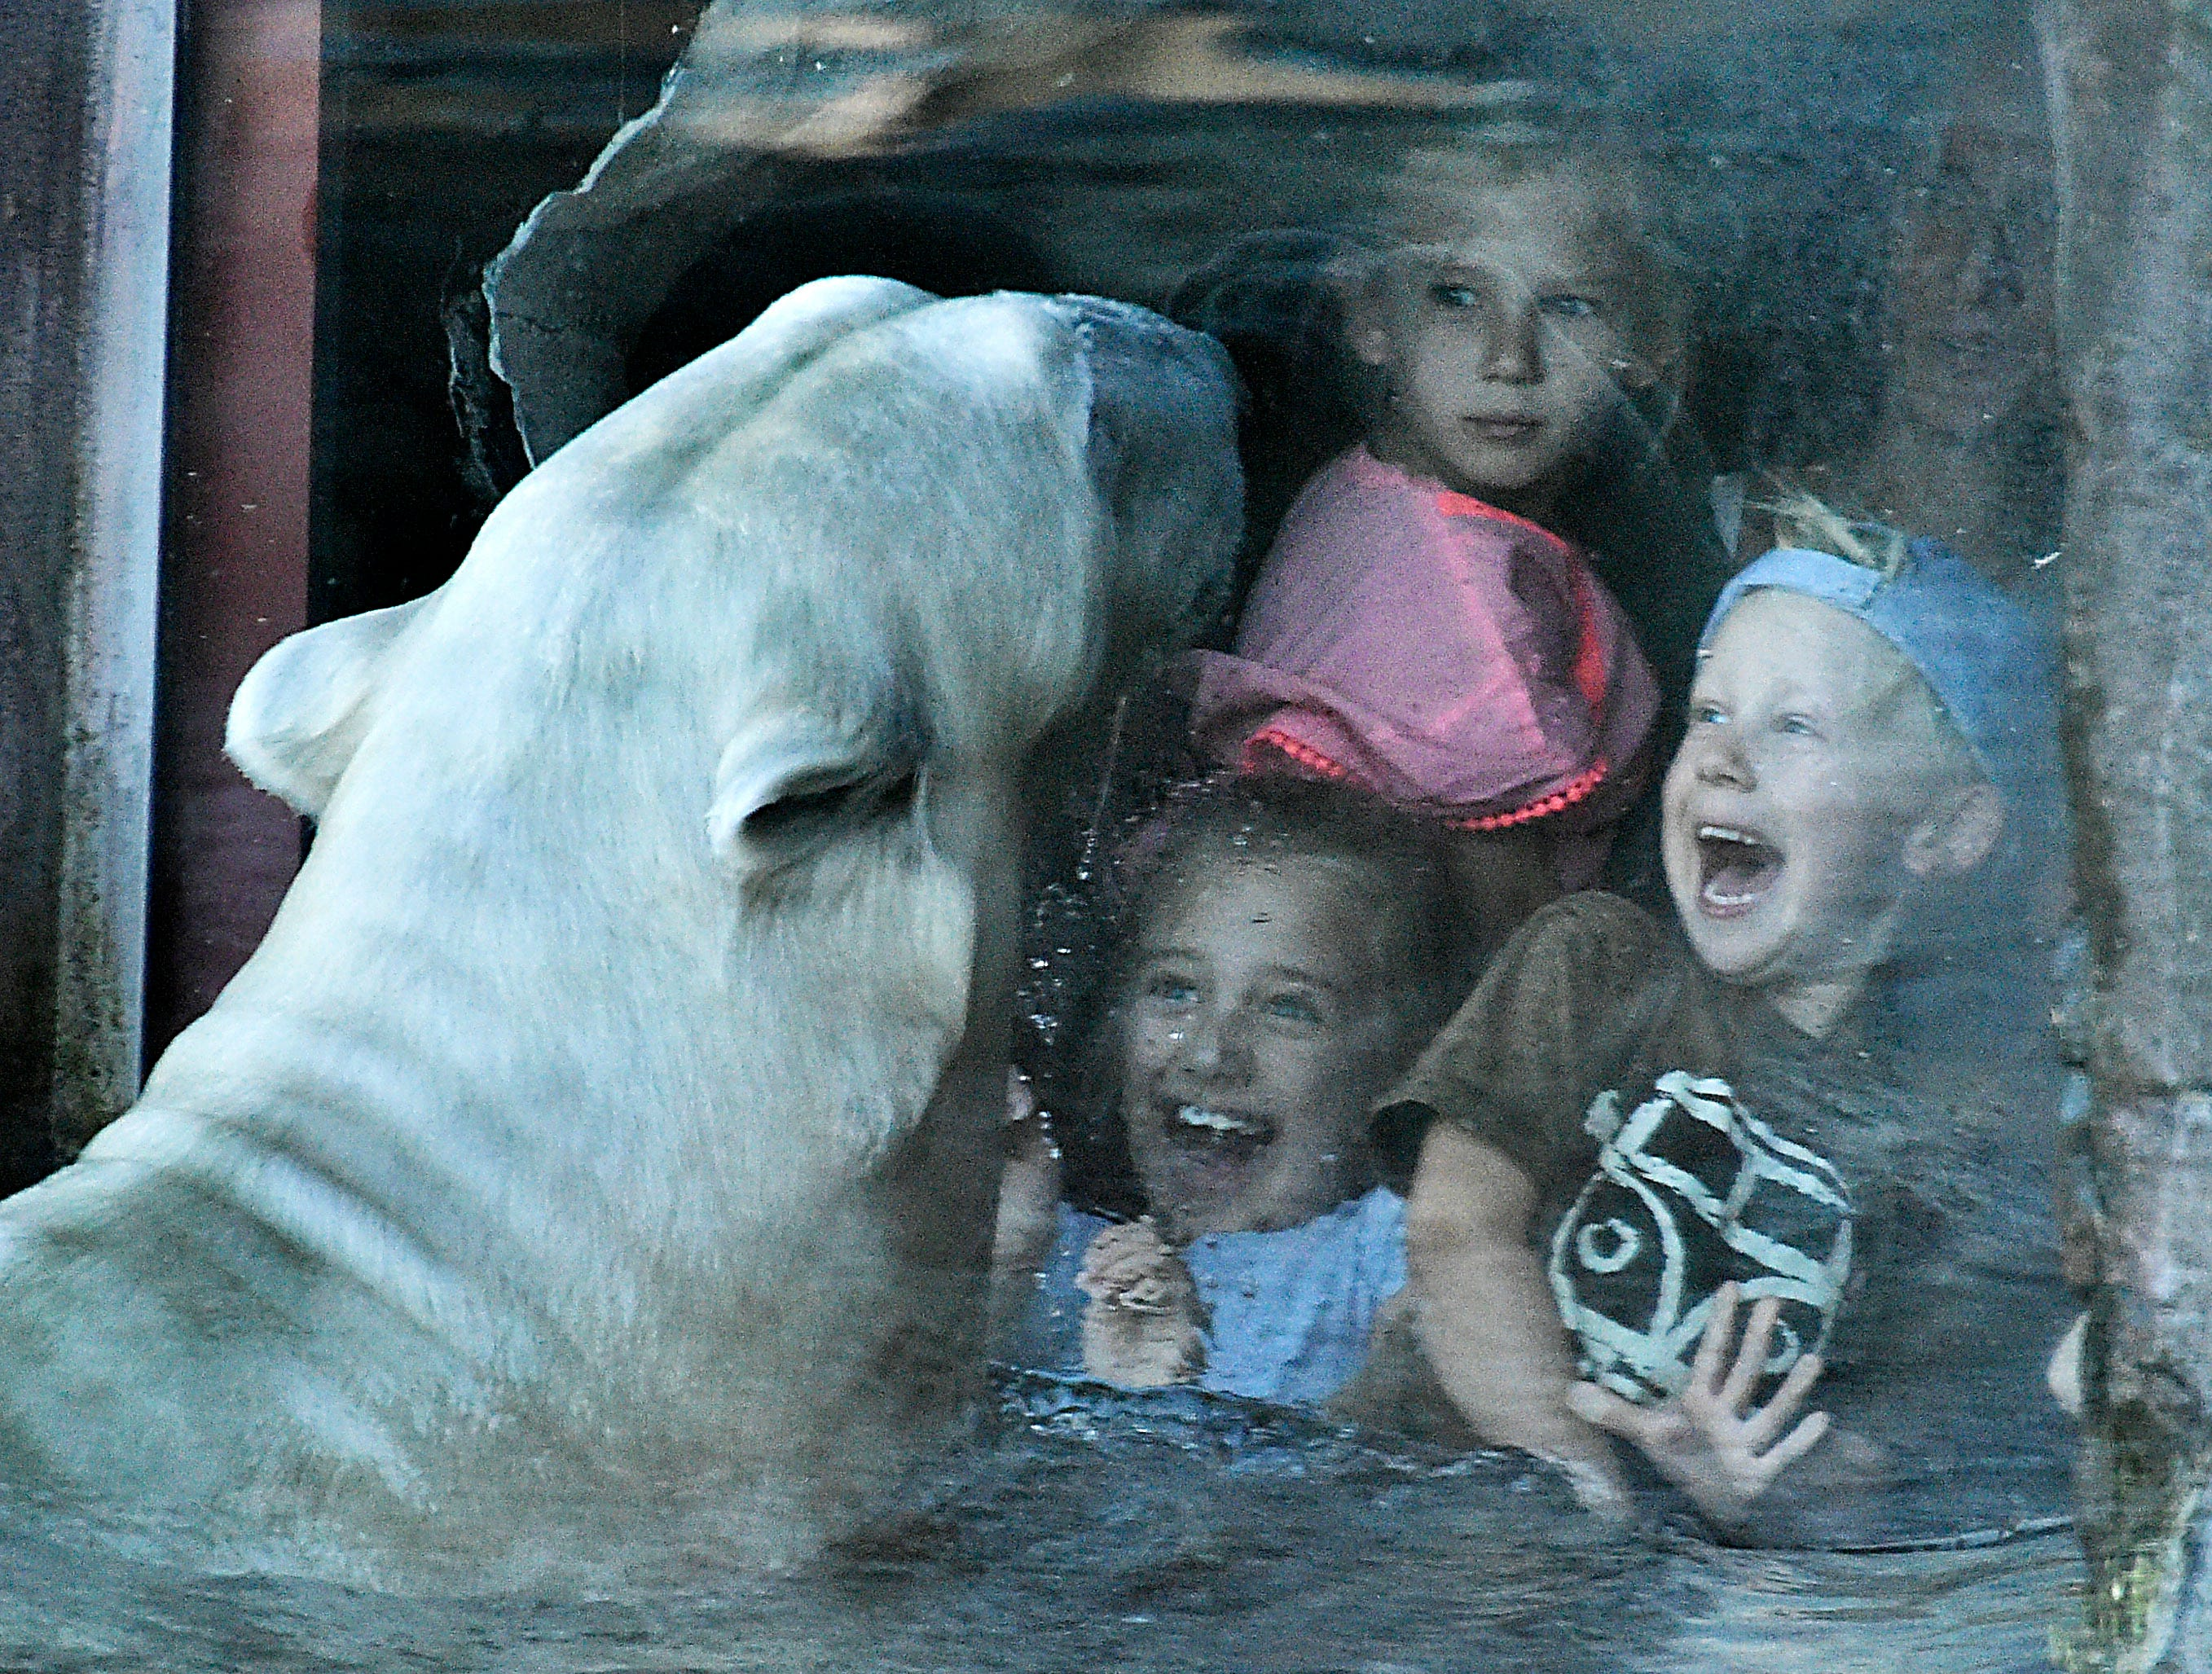 Separated by a security window, young visitors and a polar bear watch each other at the zoo in Gelsenkirchen, Germany, Tuesday, Oct. 16, 2018.